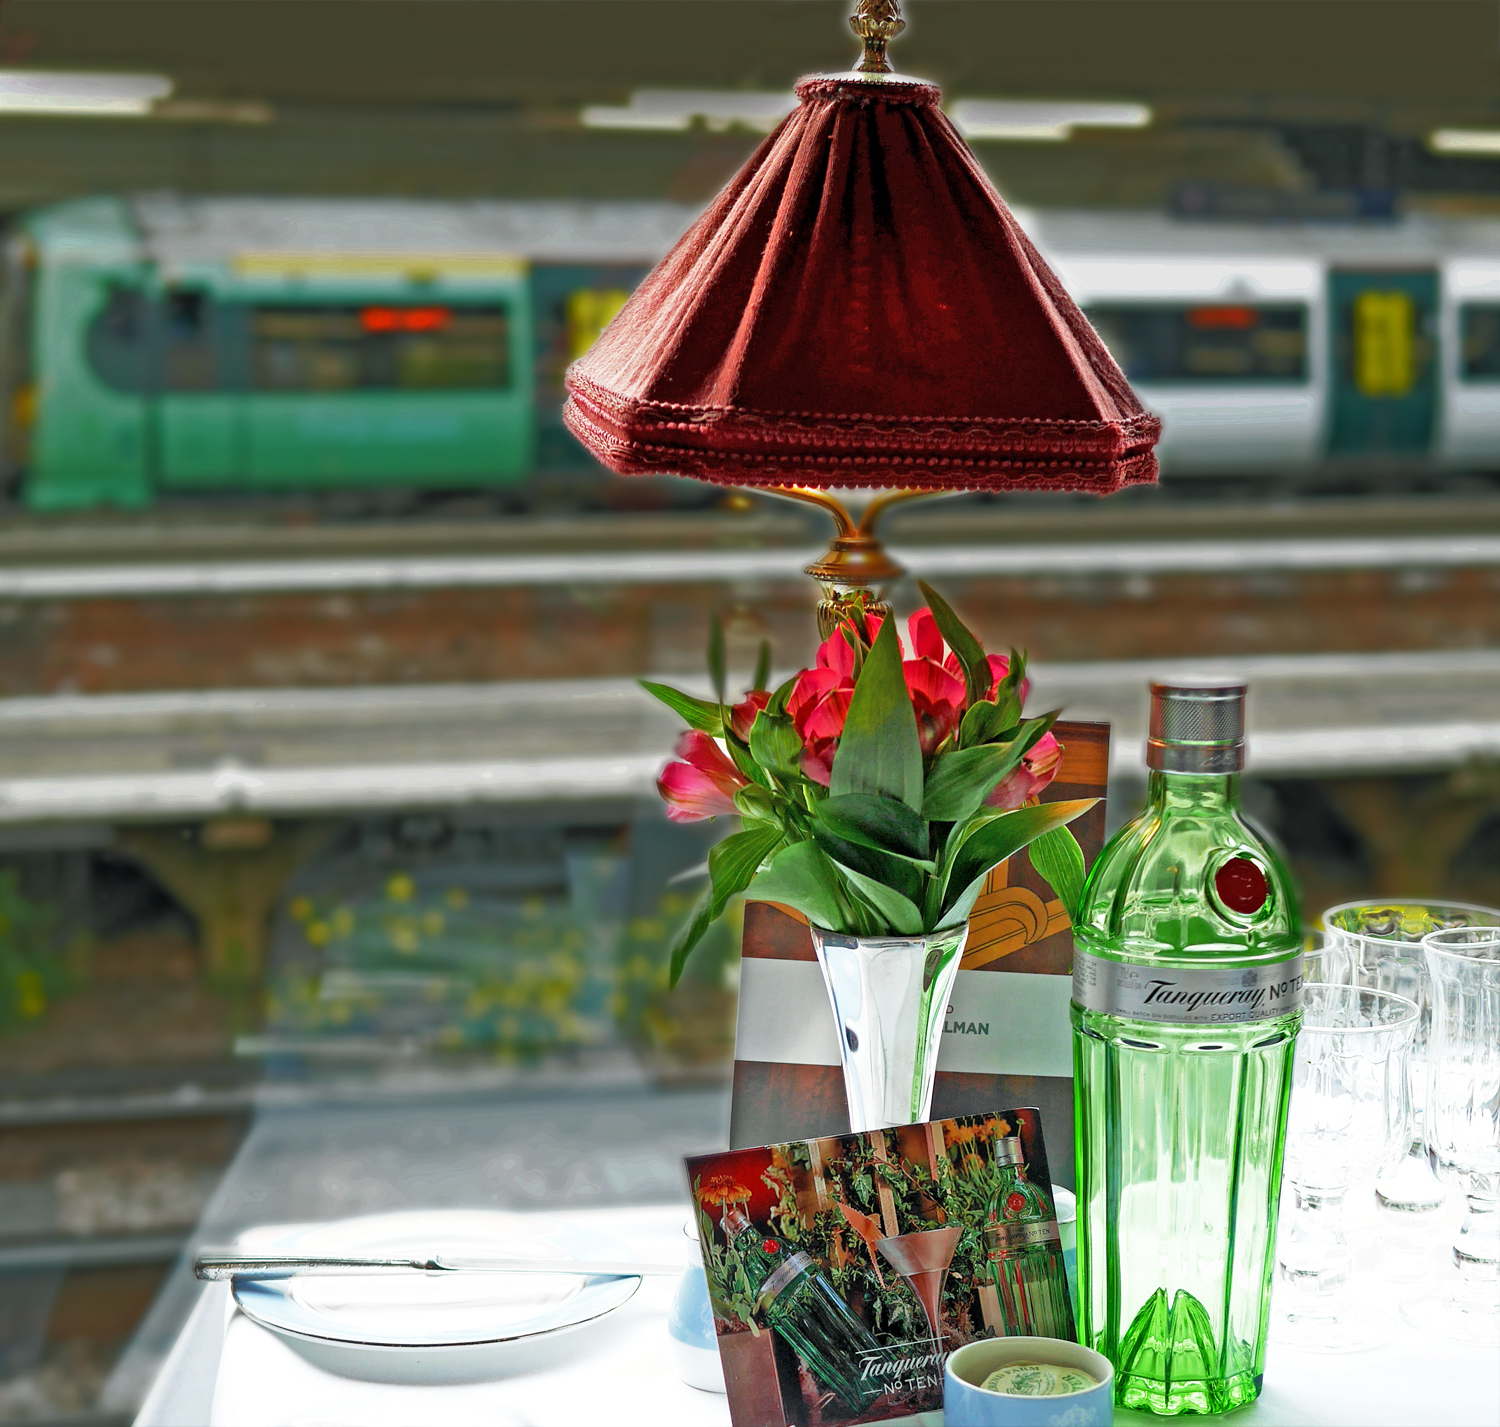 Elegant Table Setting - Tanqueray 10